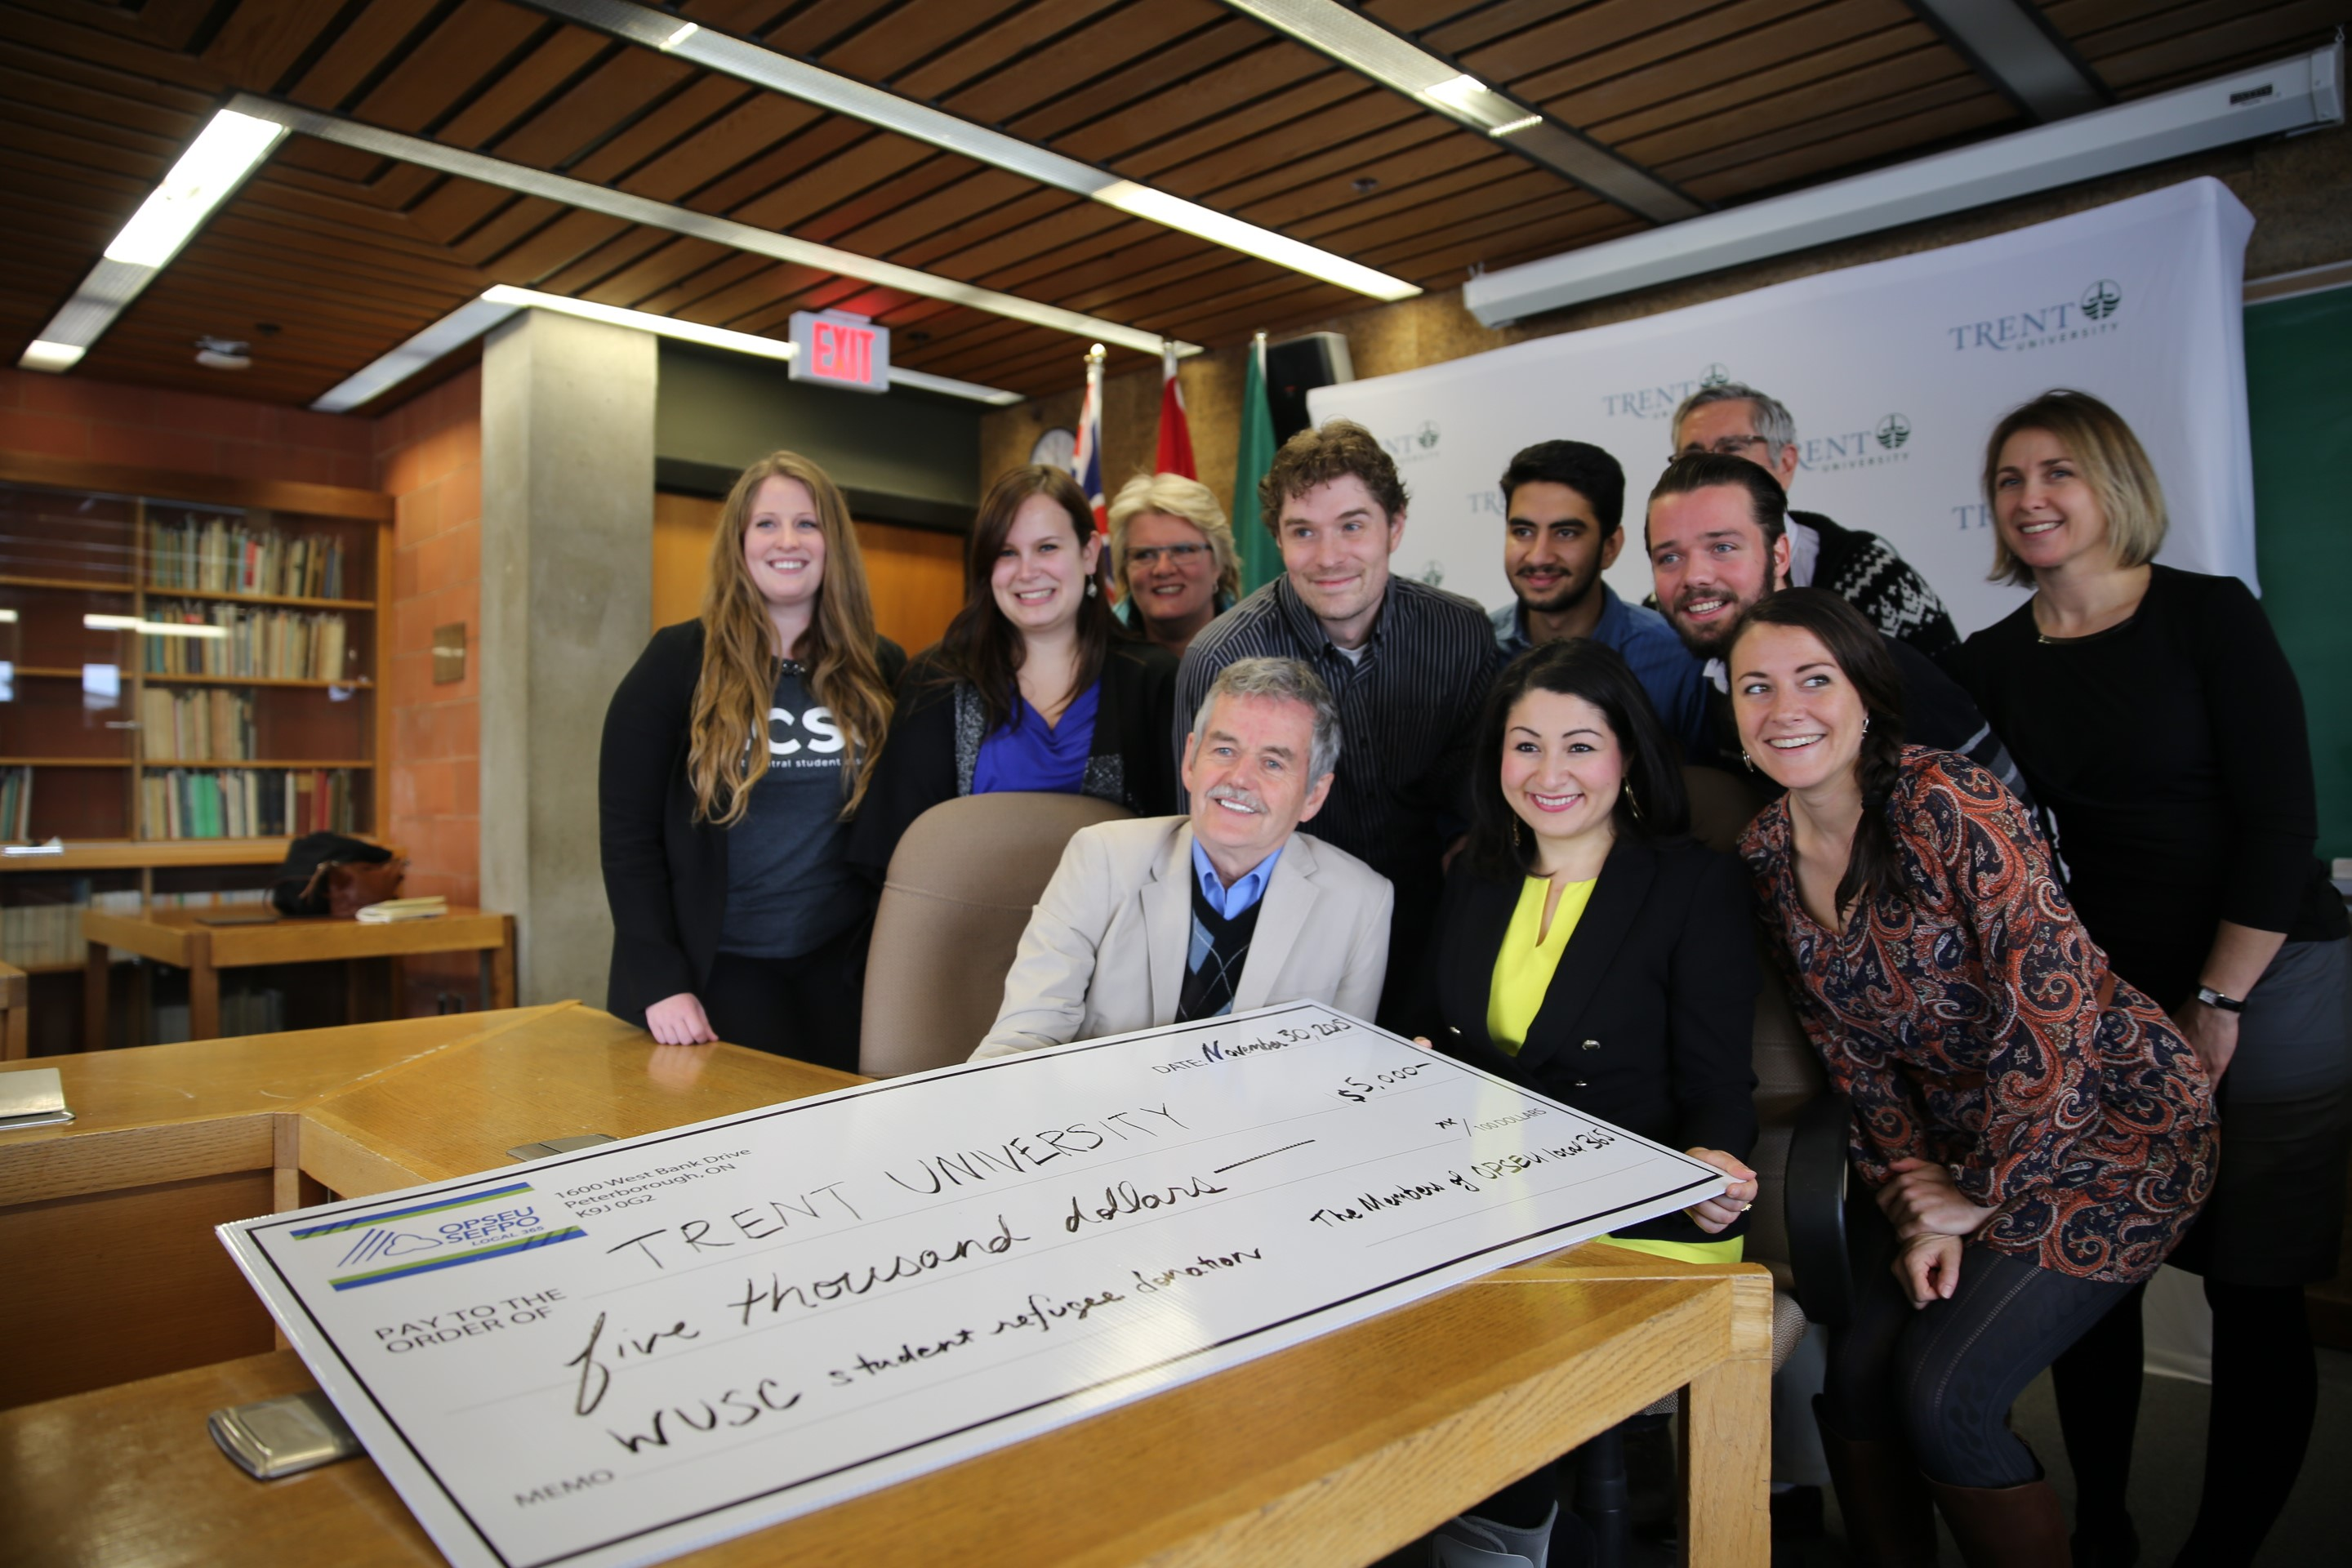 Beyond the $35,000 for the Student Refugee Program